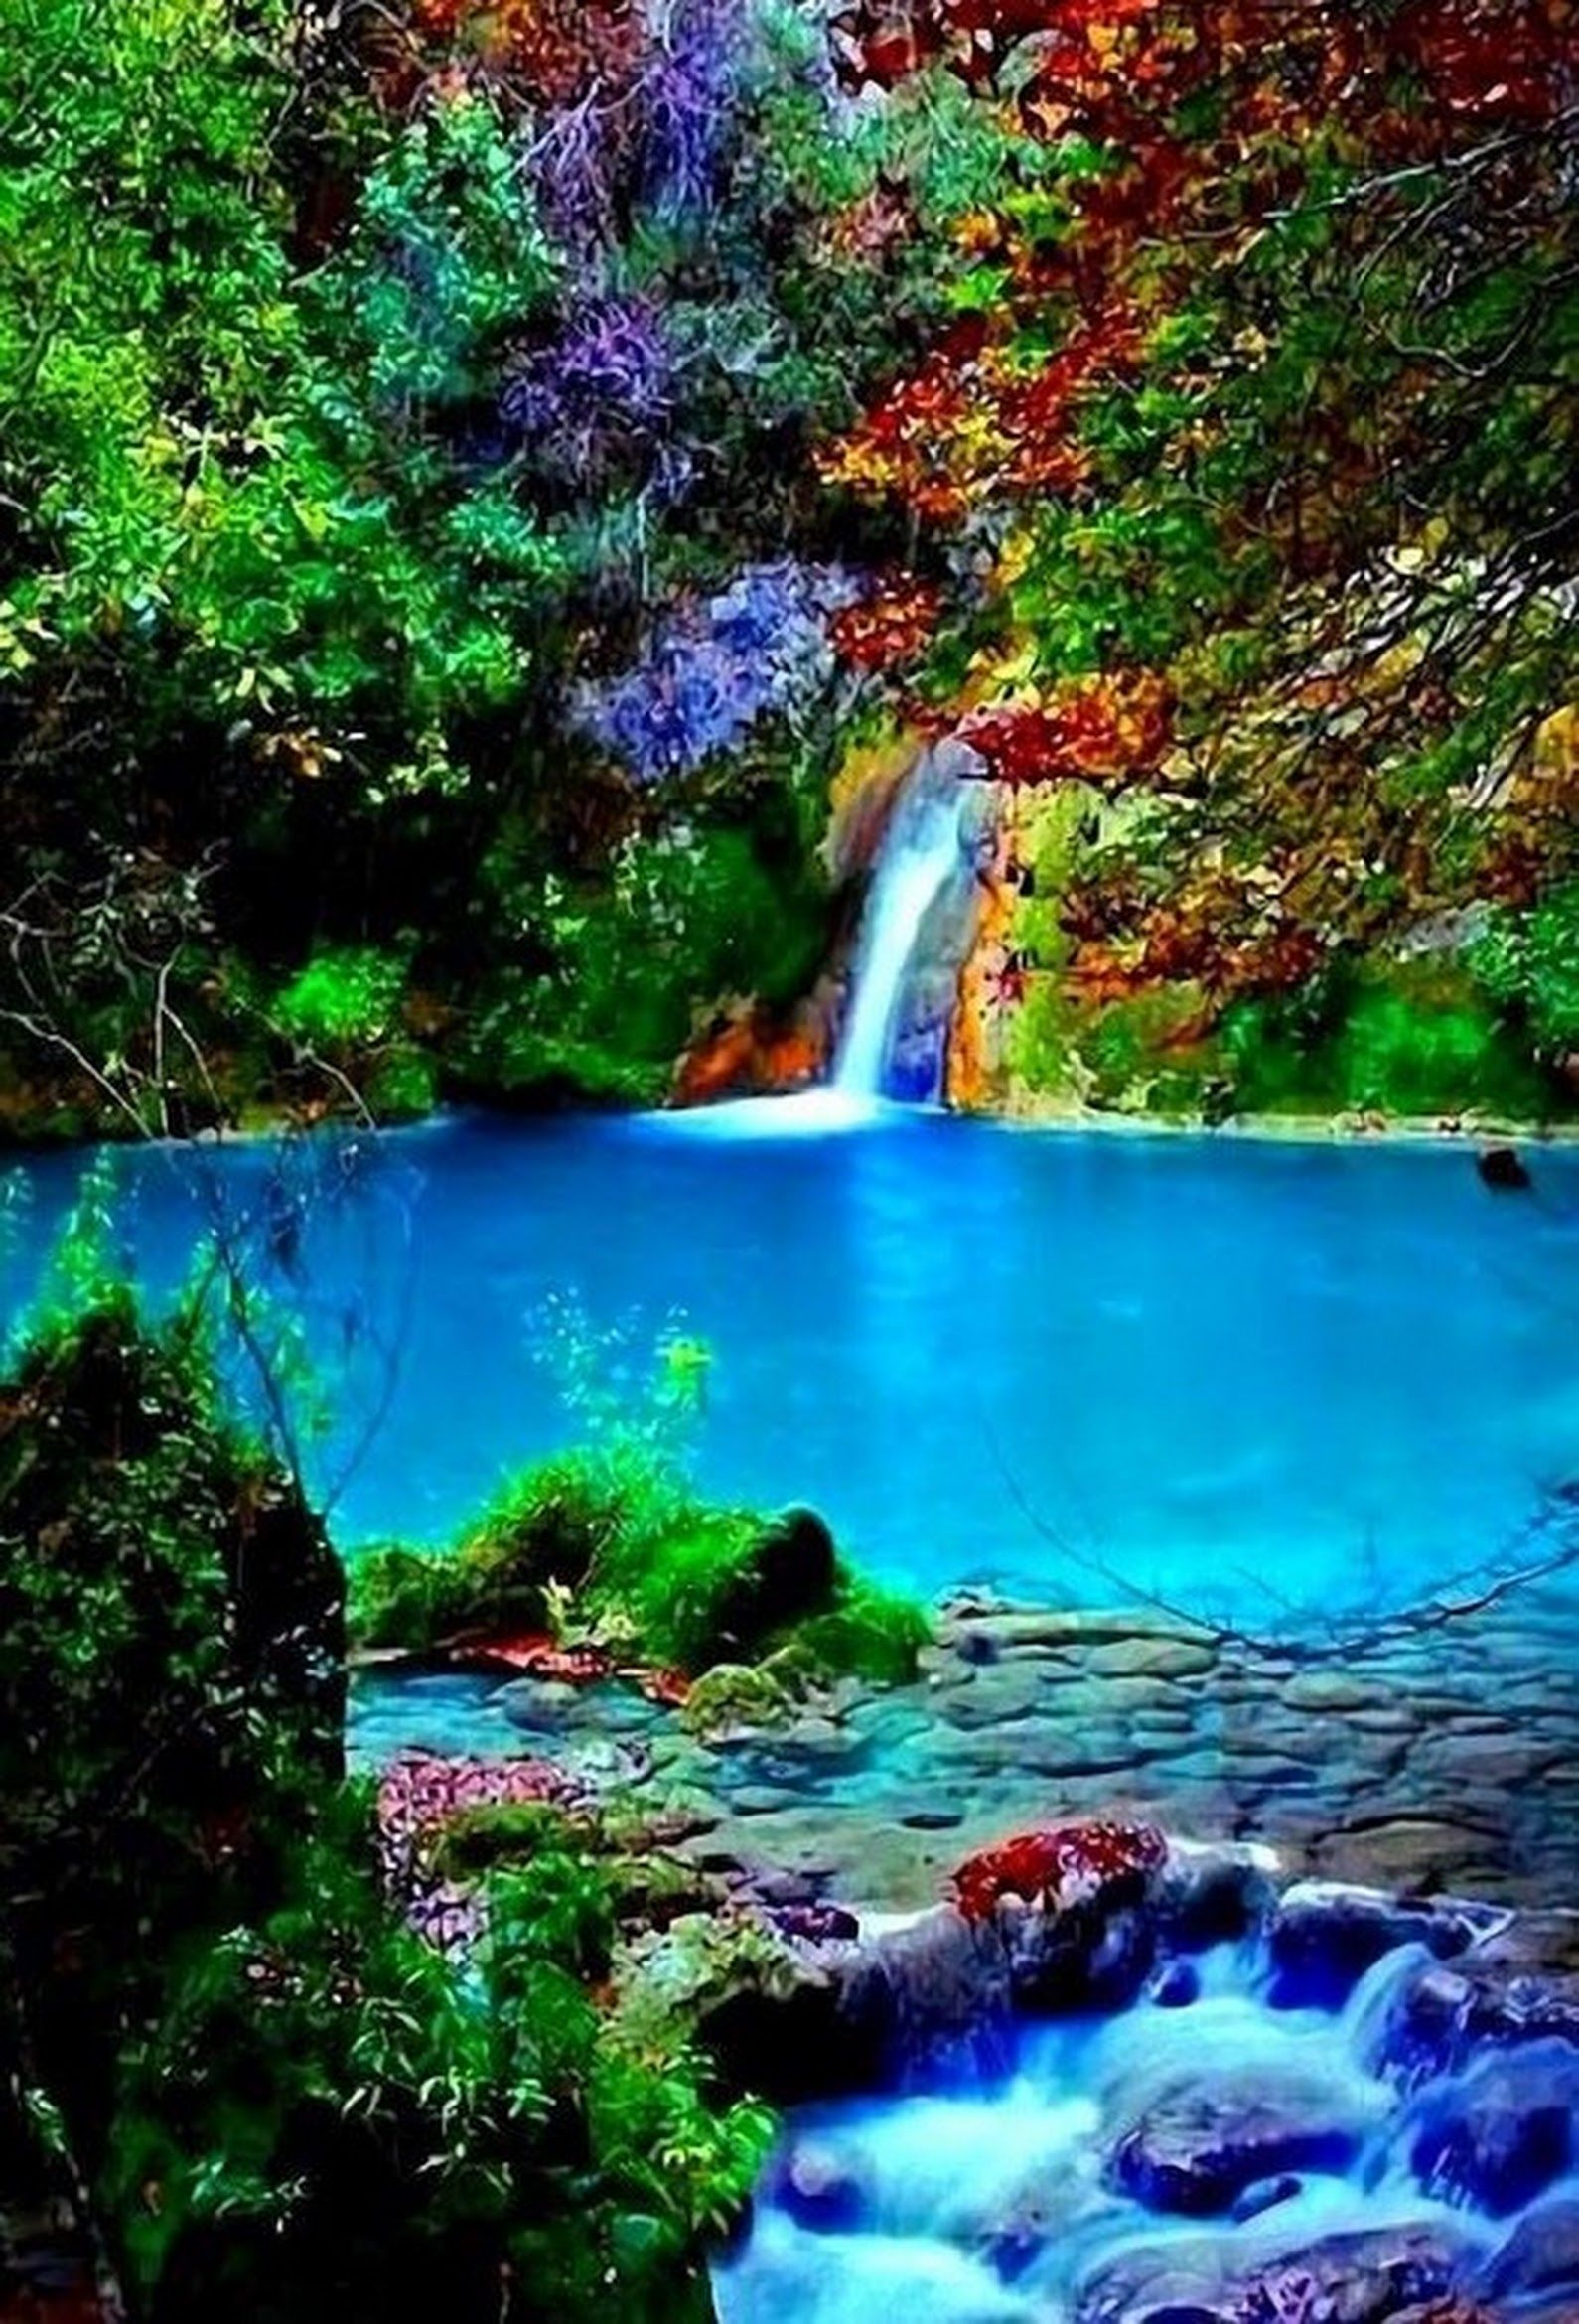 Magical Waterfall In Nature Love Waterfallslove Wonders Of The World Waterfall Places To Travel